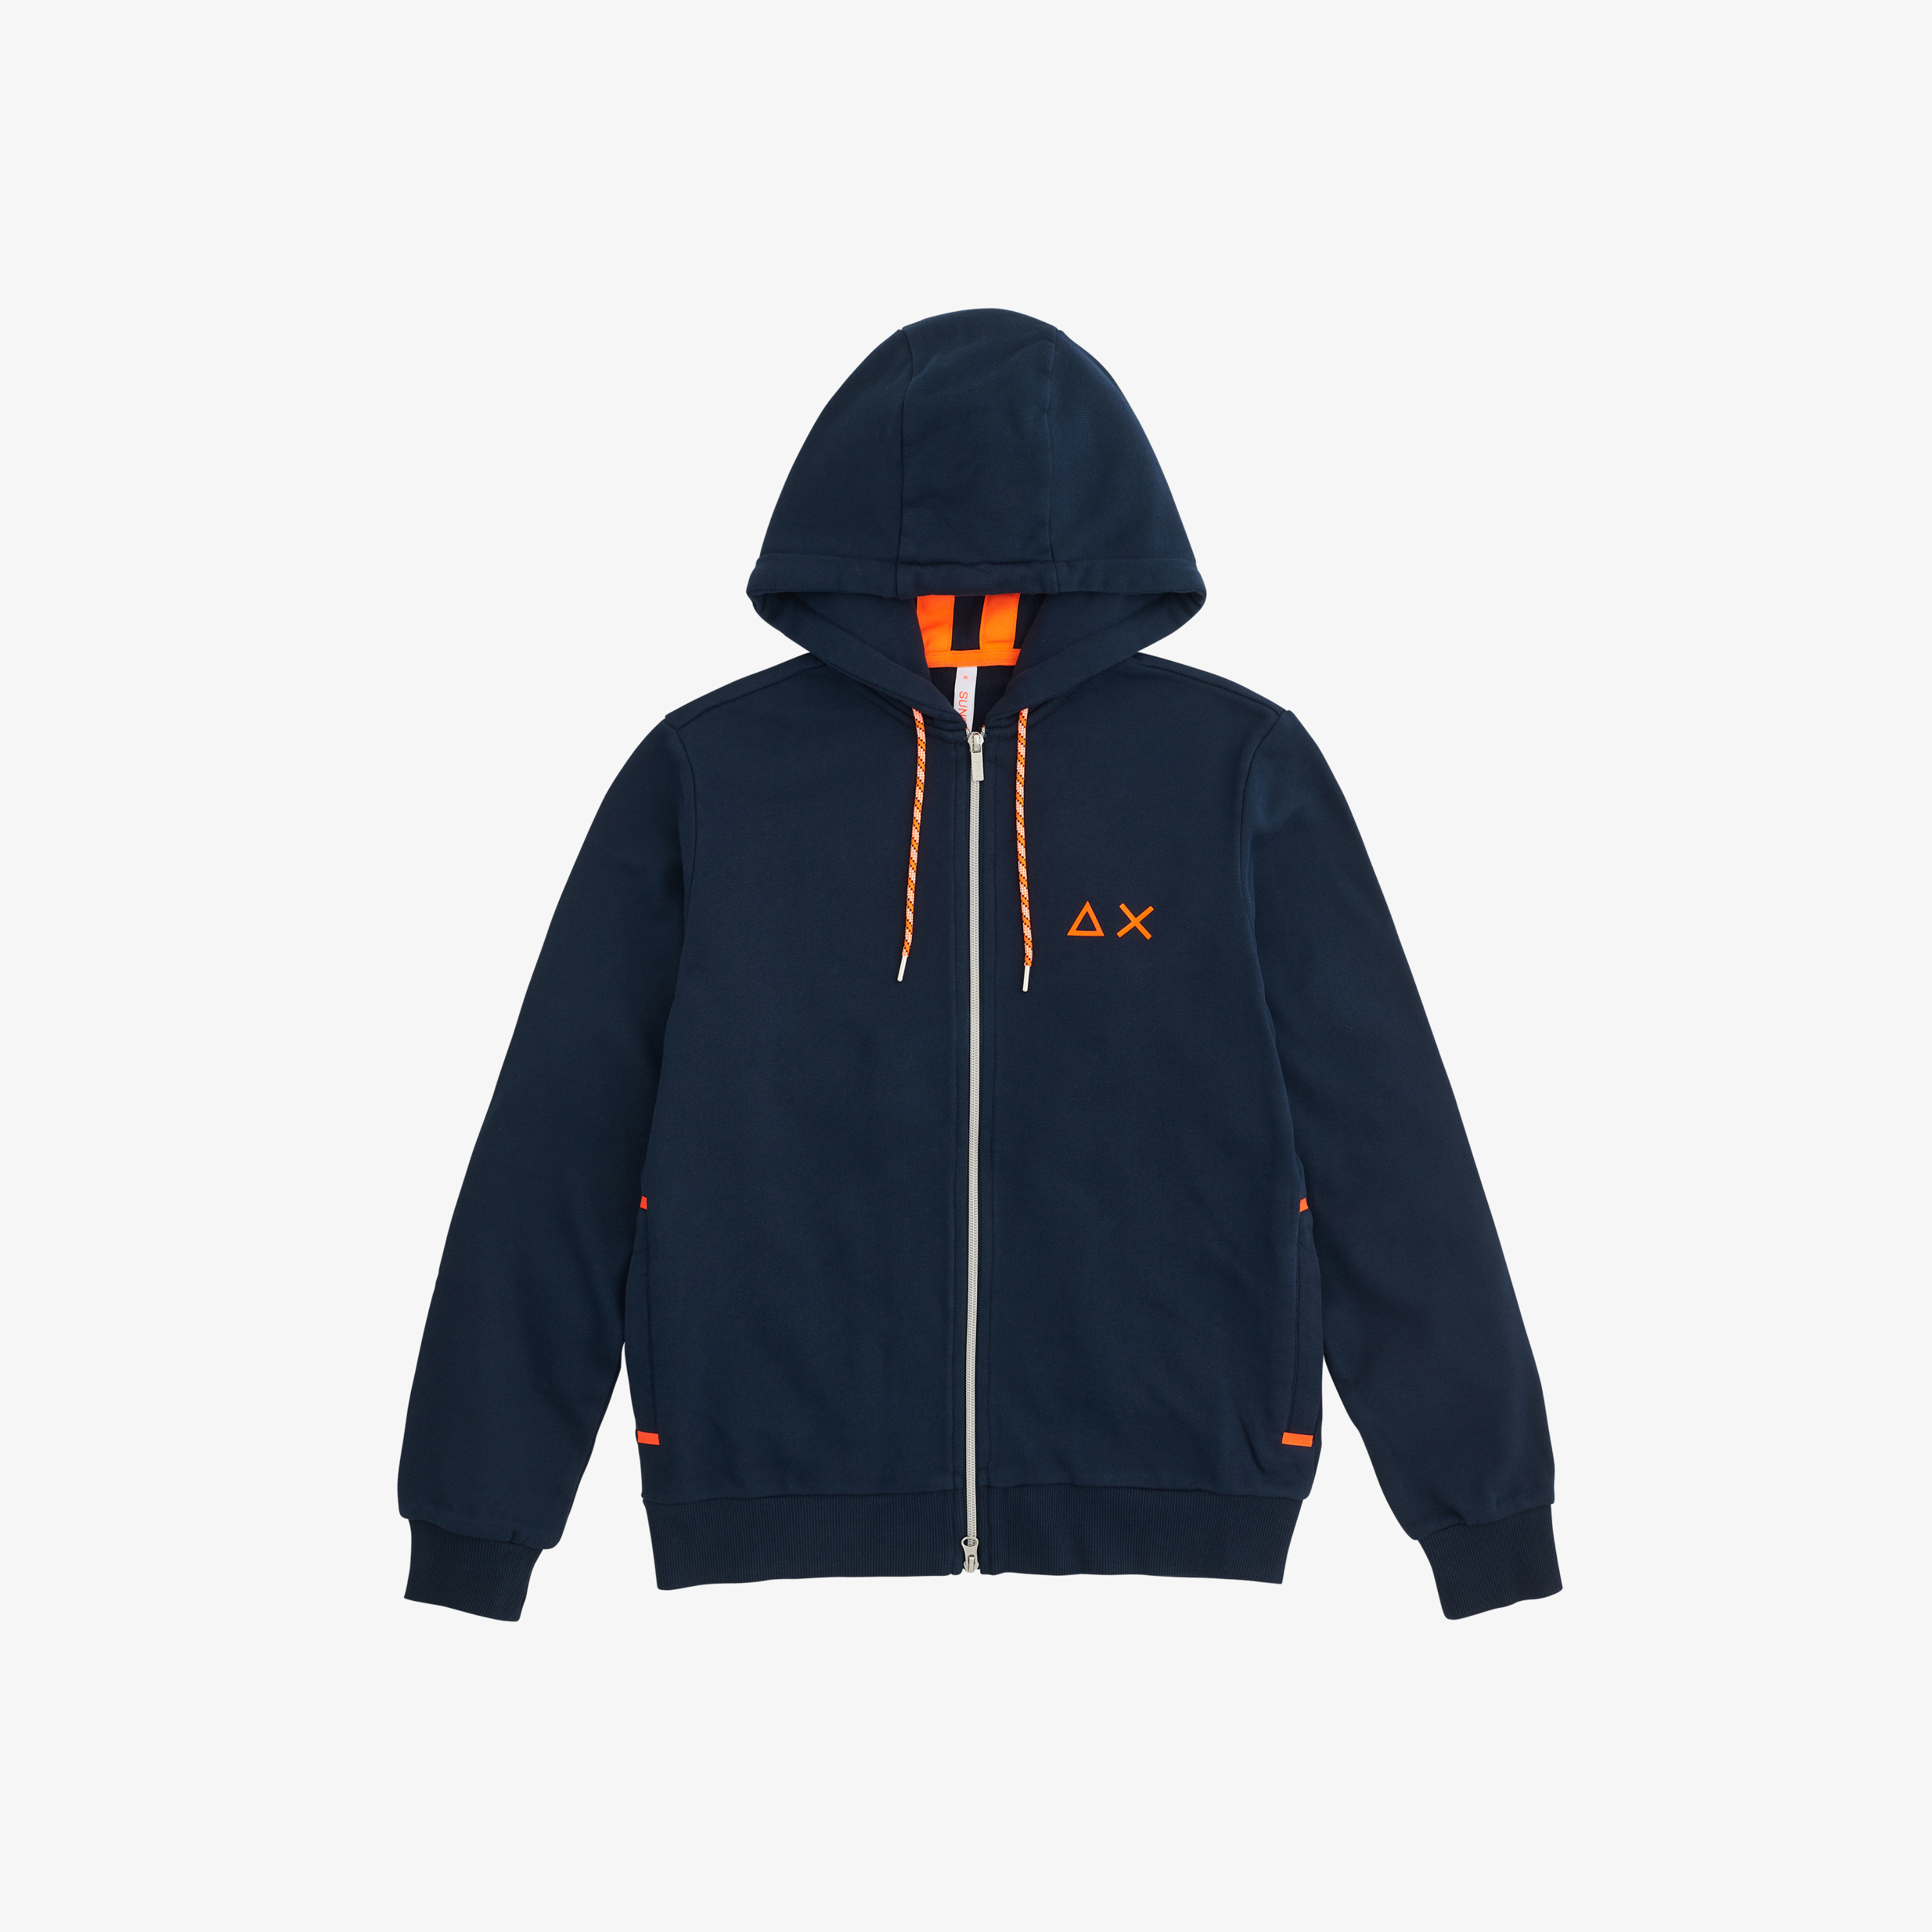 HOOD ZIP DETAIL FLUO COTT. FL. NAVY BLUE